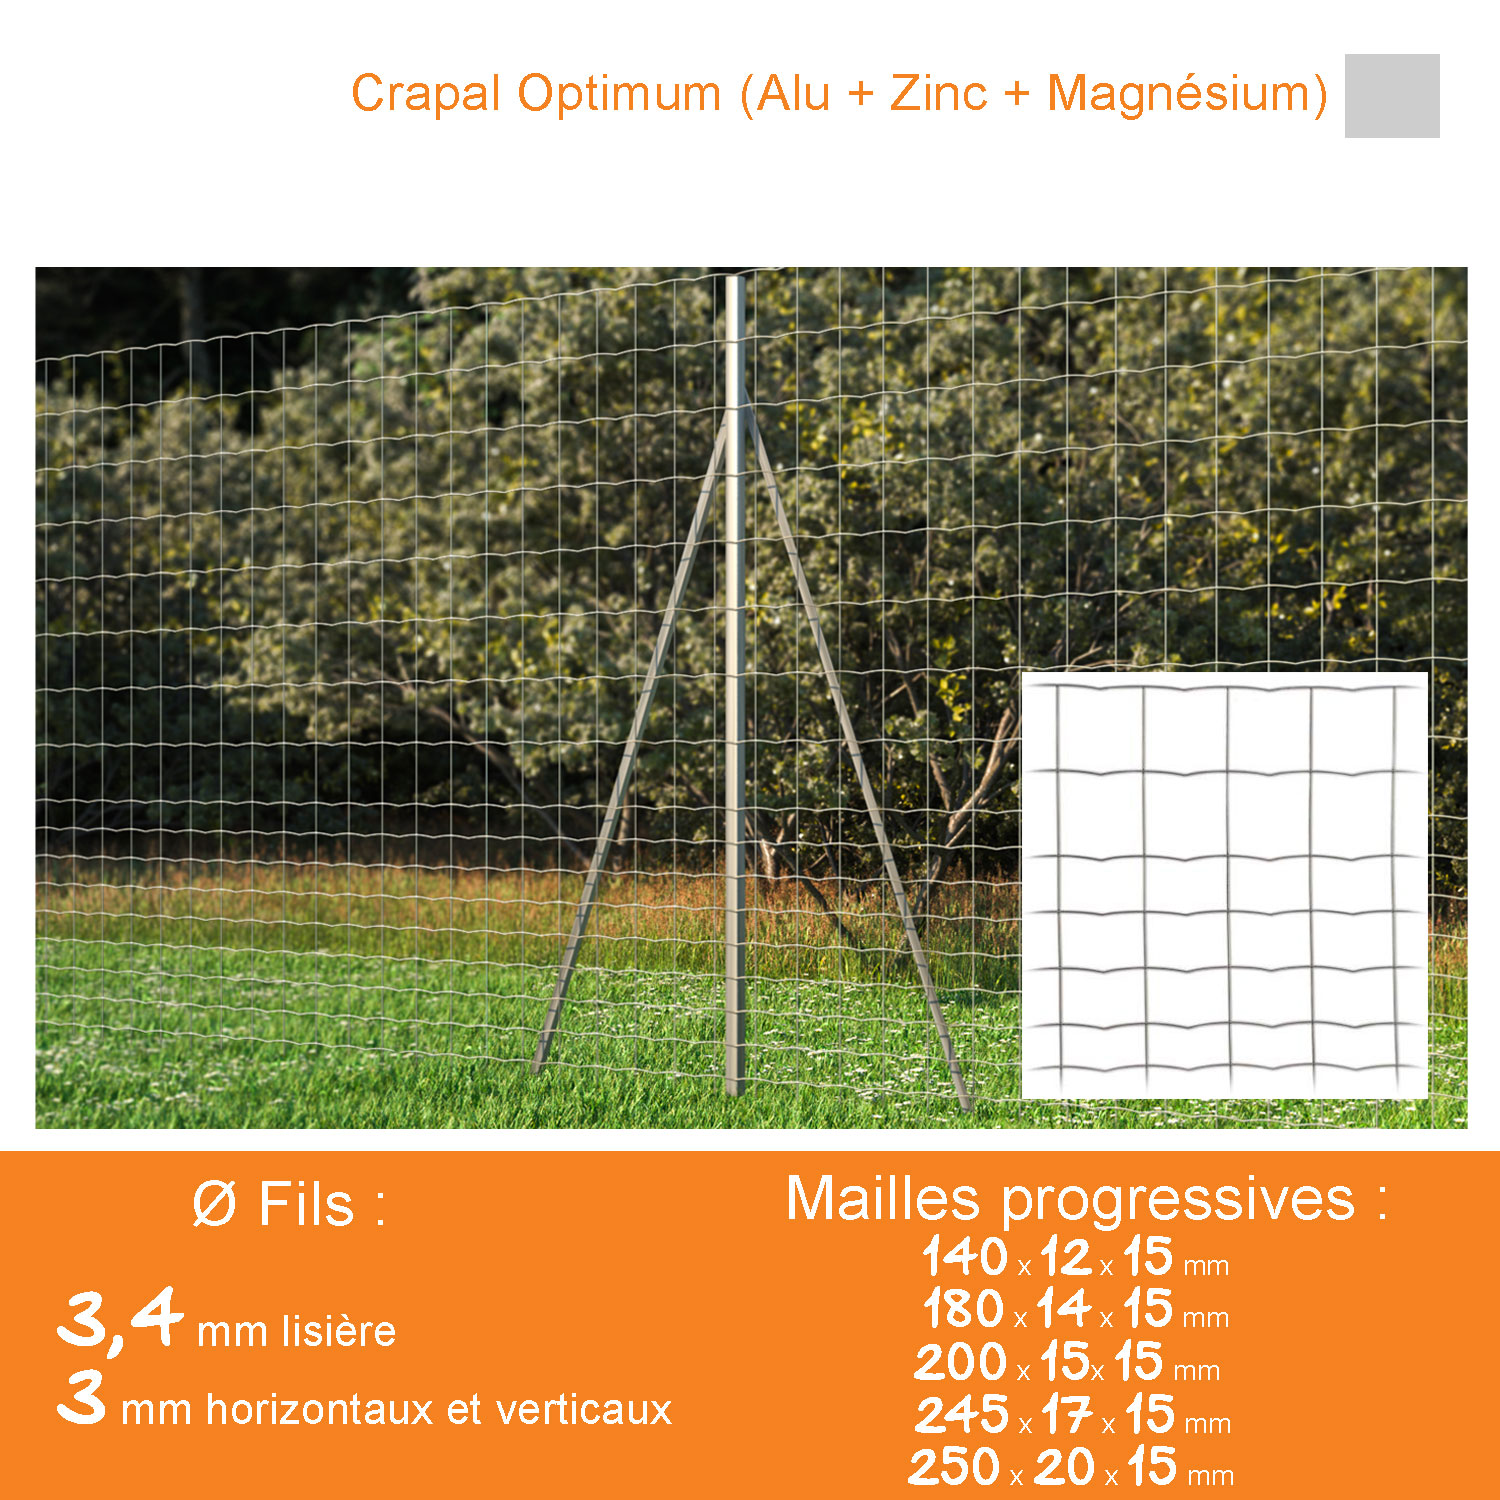 Grillage soudé ATAK LOURD Mailles progressives - Crapal Optimum Ø 3,4 / 3 mm - Lg. 50 m